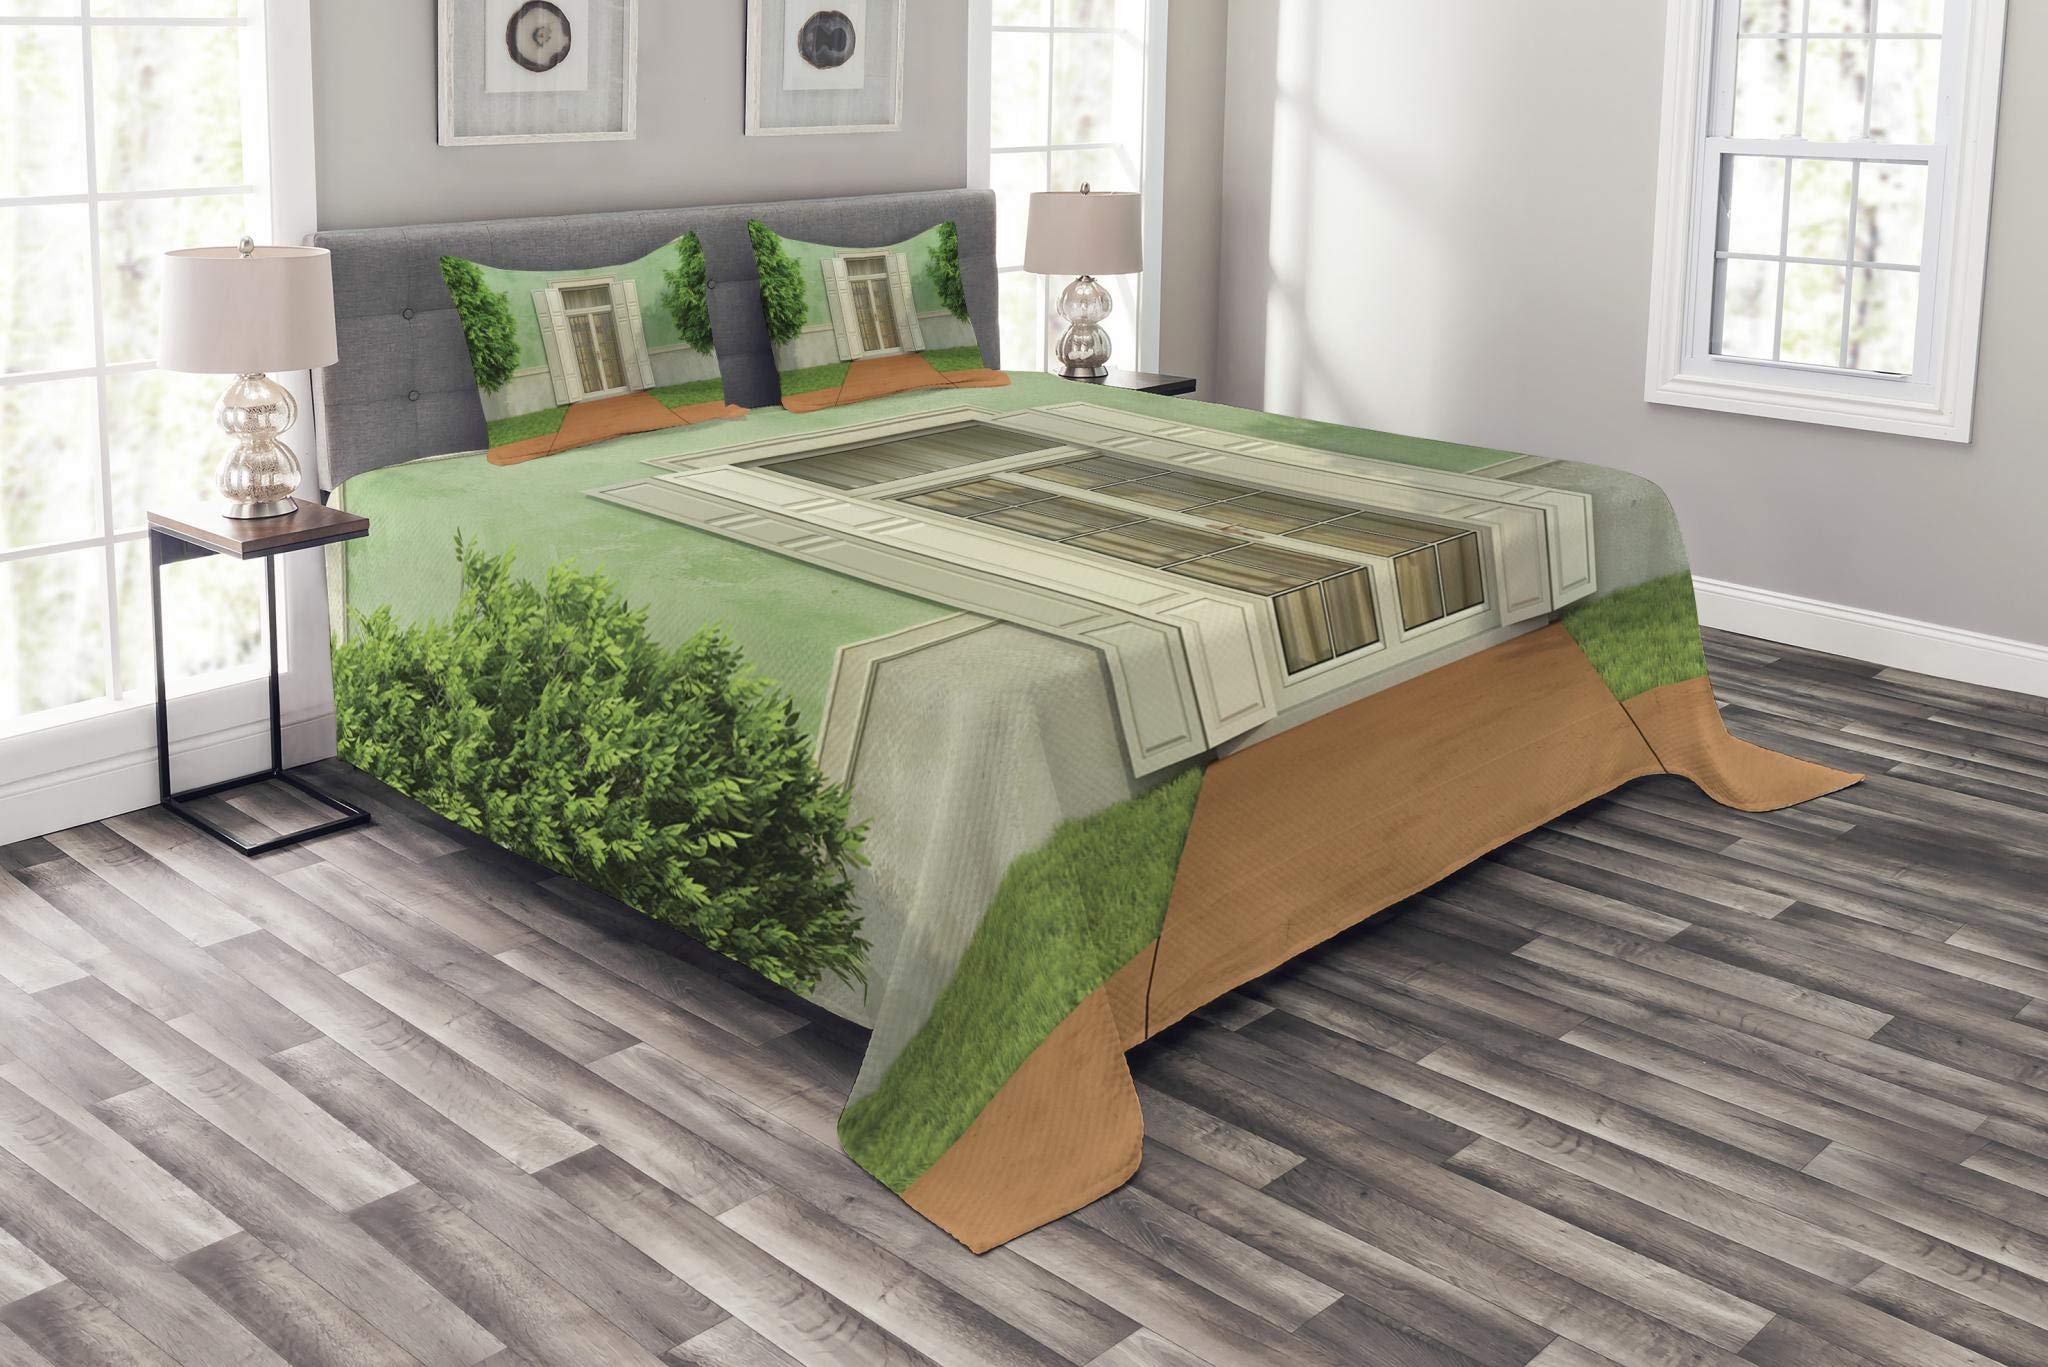 Lunarable Country Bedspread Set Queen Size, Classical Designed Garden of an Old House with Closed Window and Shutters Print, Decorative Quilted 3 Piece Coverlet Set with 2 Pillow Shams, Green Cream